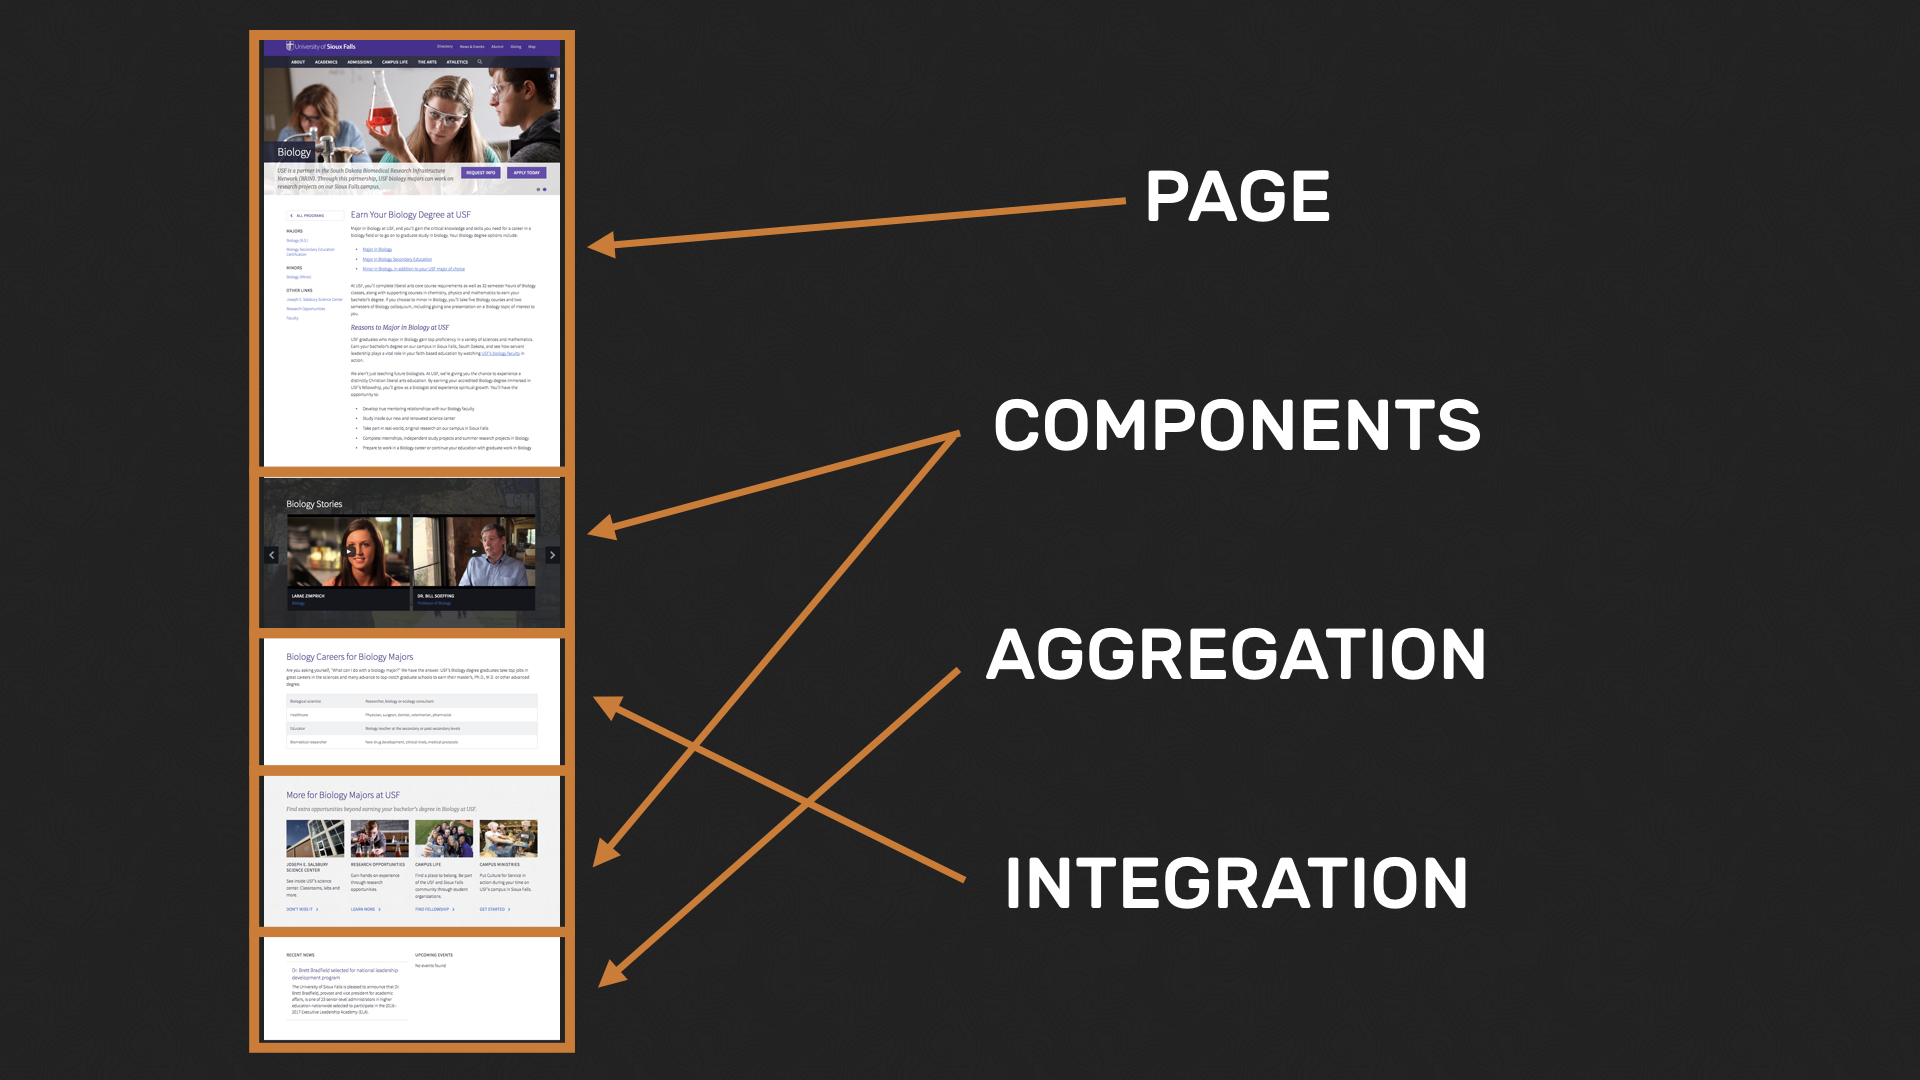 A university landing page showing page, components, aggregation, and integration